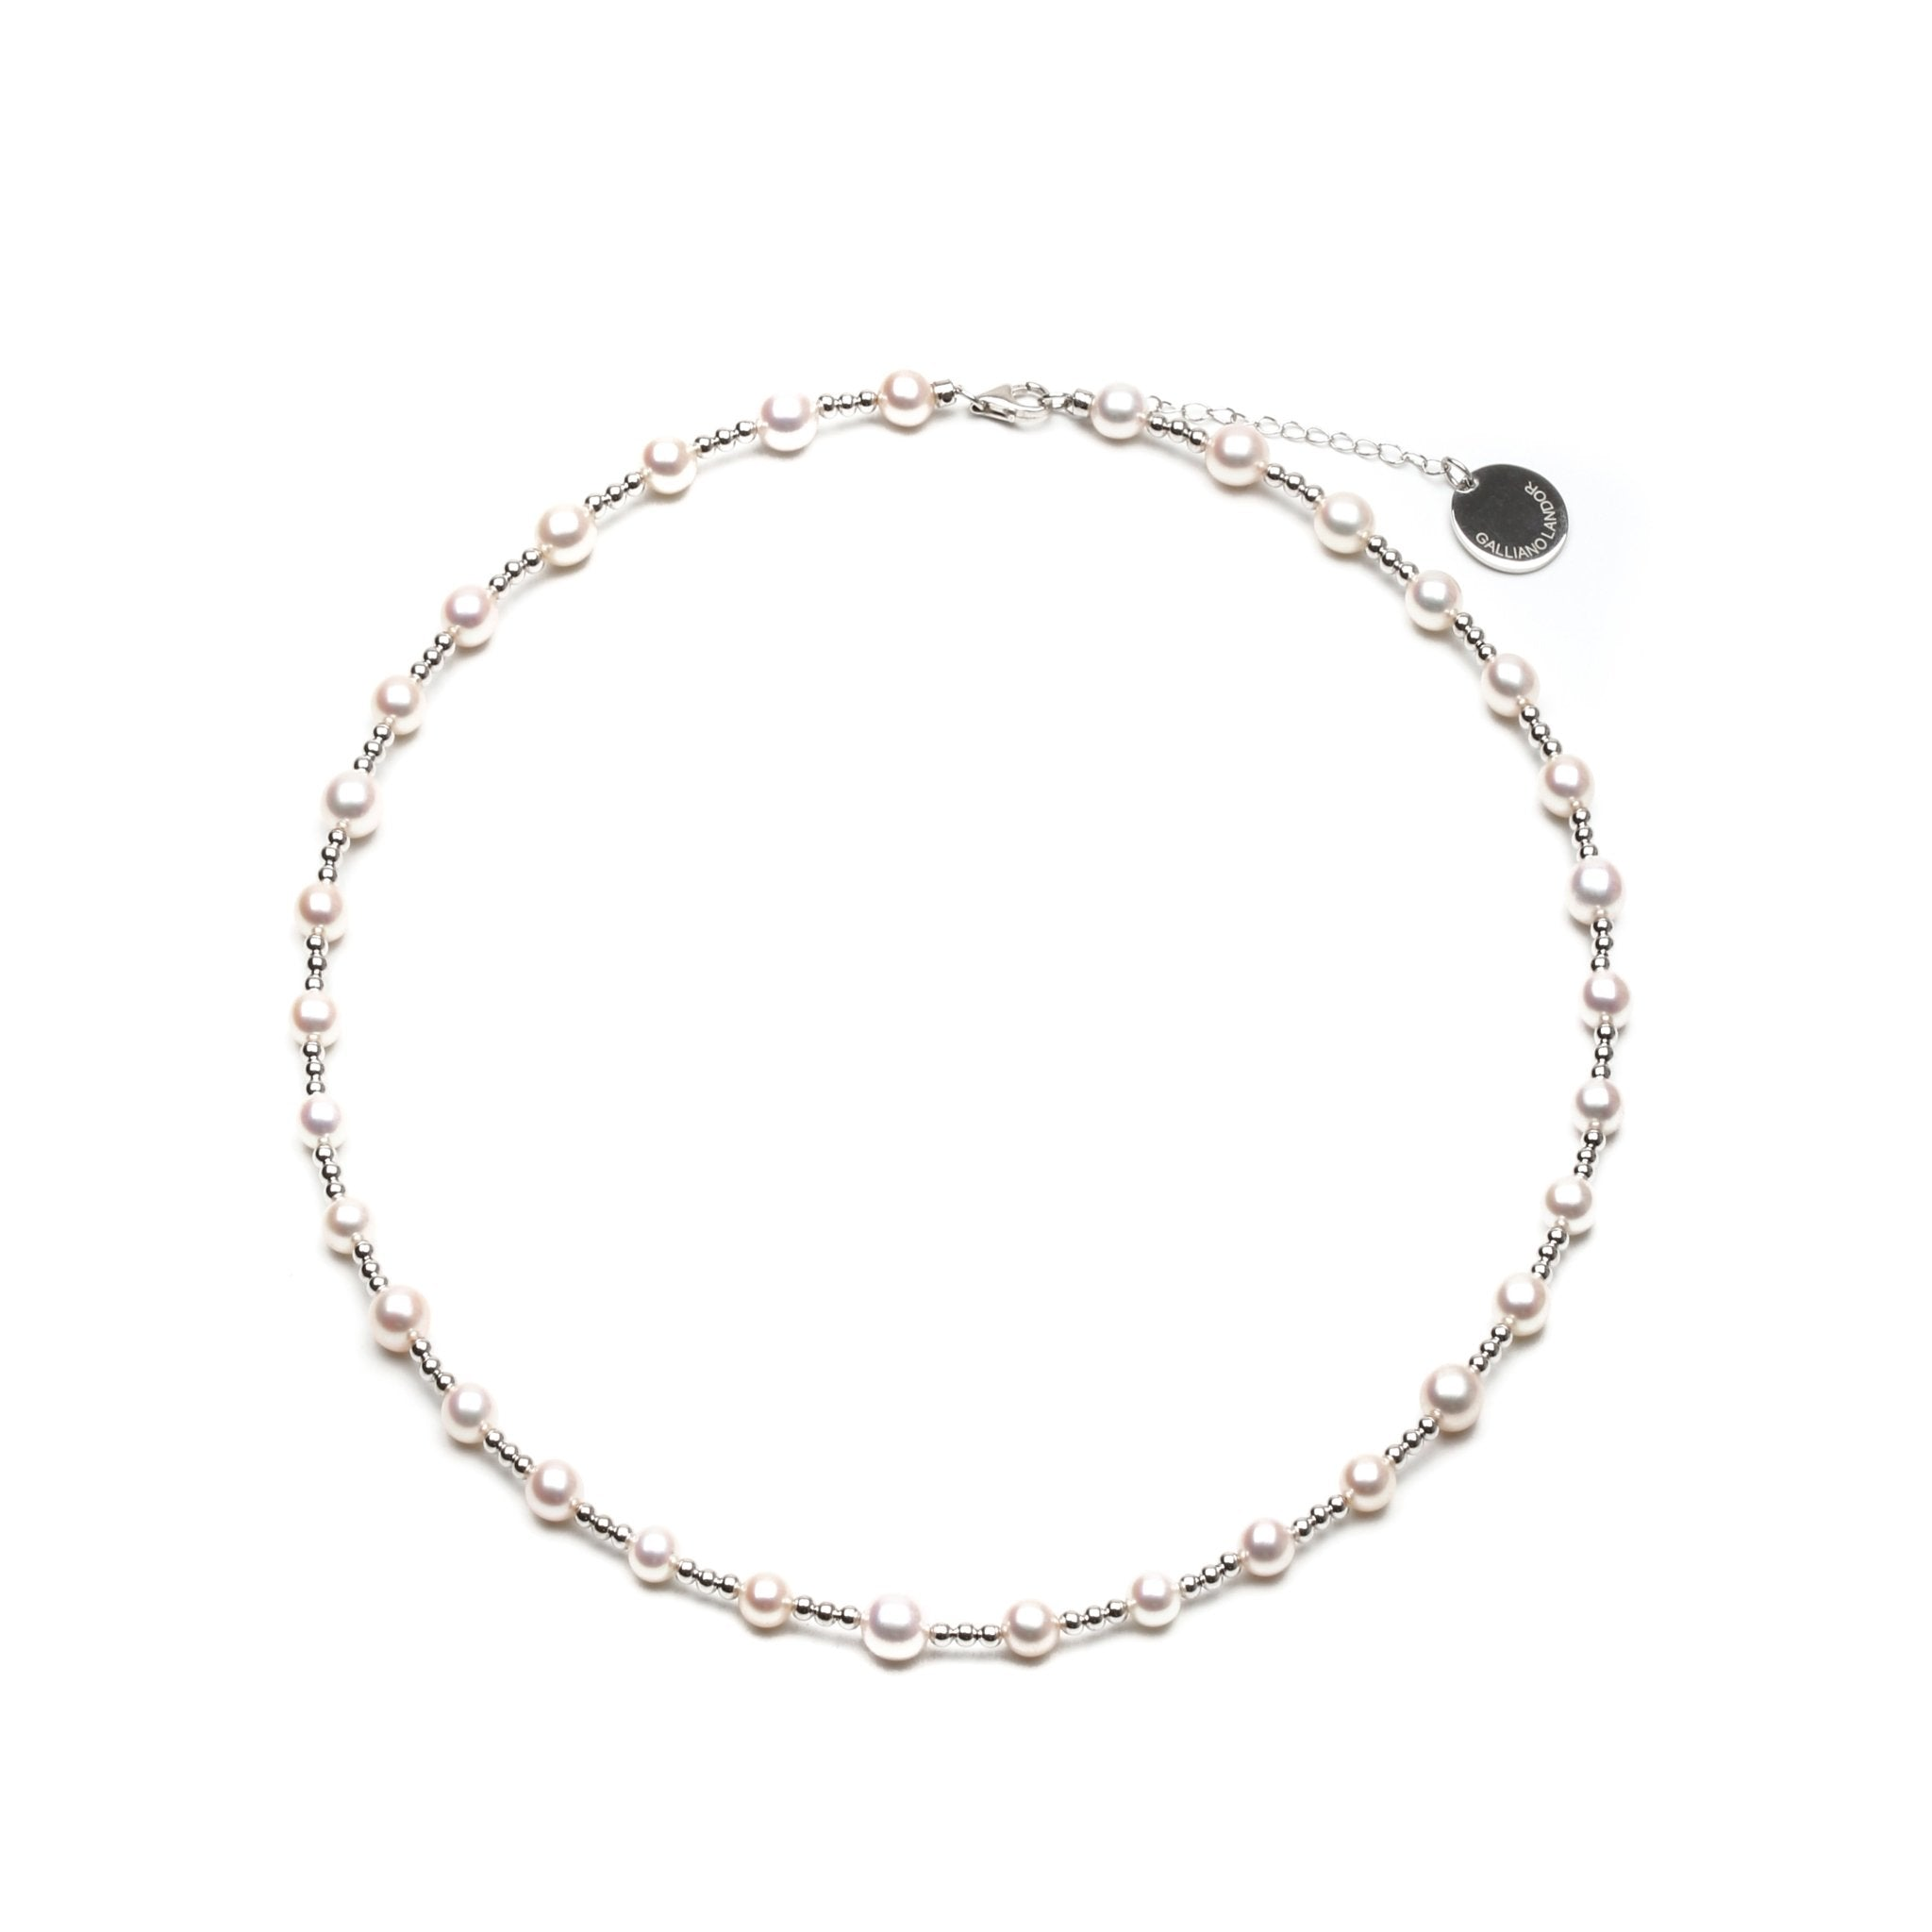 GALLIANO LANDOR WGL-201 Pearl Necklace | MADA IN CHINA